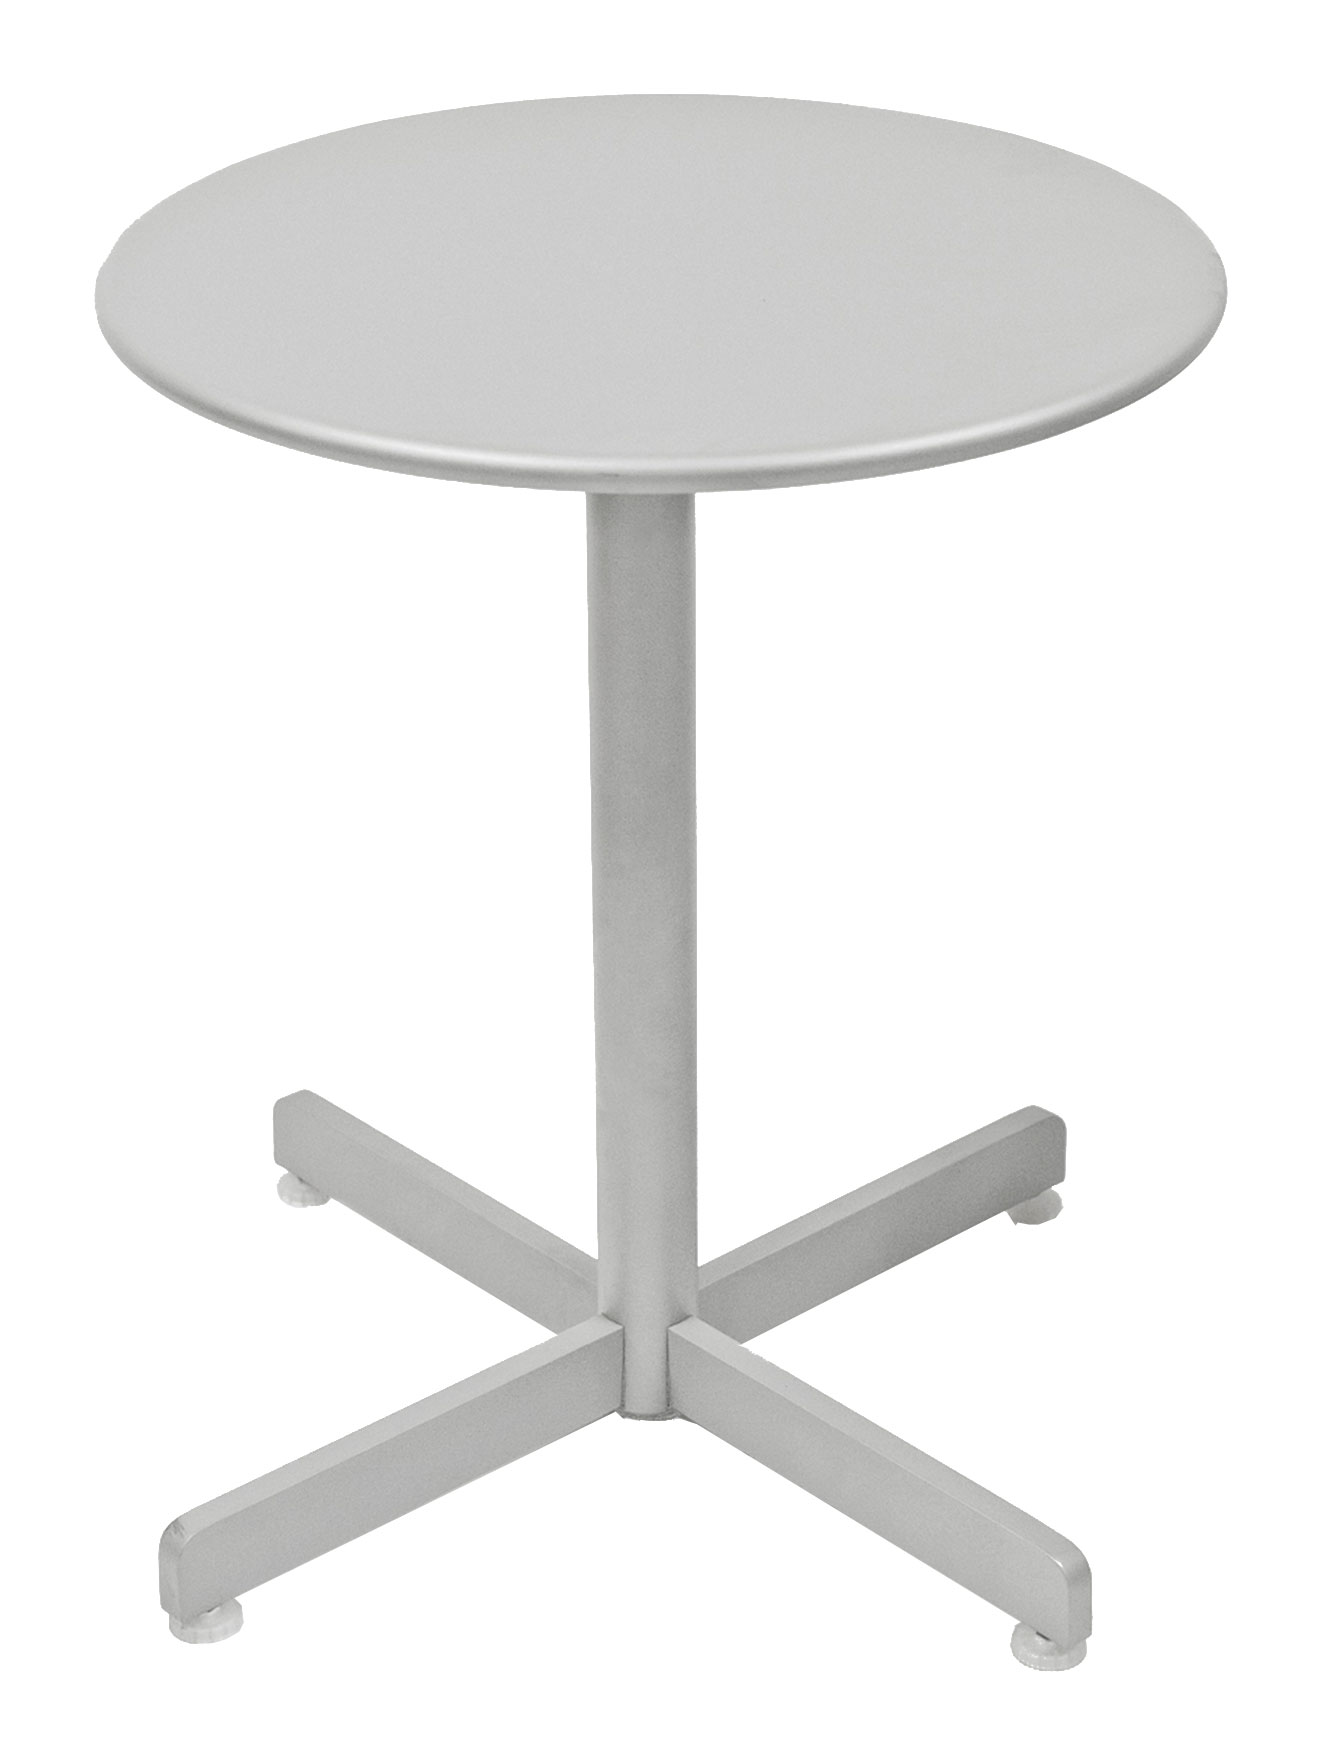 AVA TABLE TOPS $89.00 – $189.00